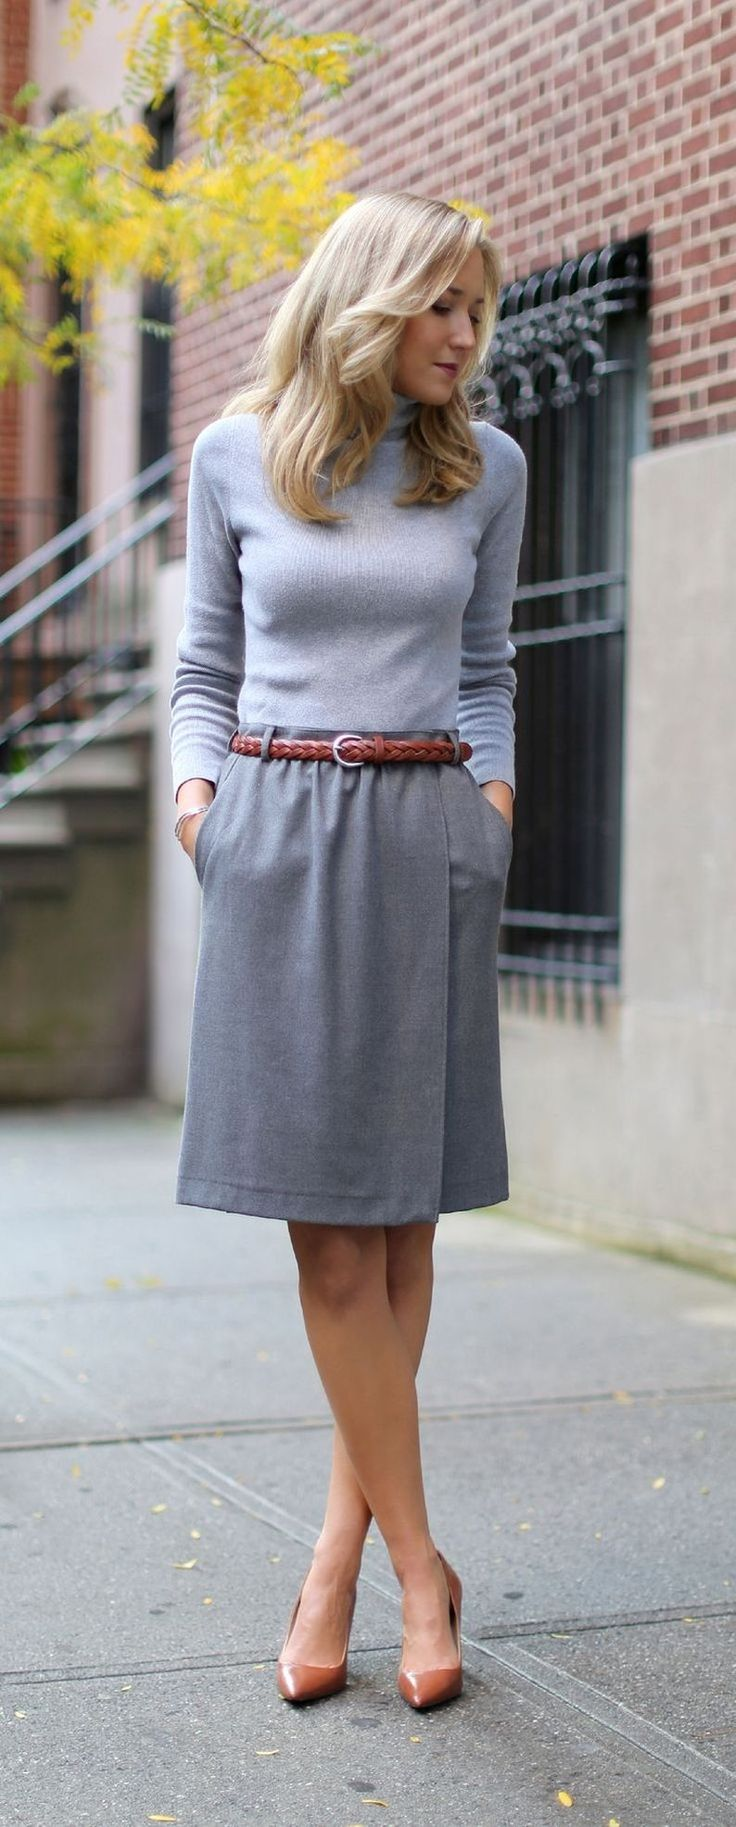 25 Casual and Elegant Women Business Outfit Ideas To Change Your Style